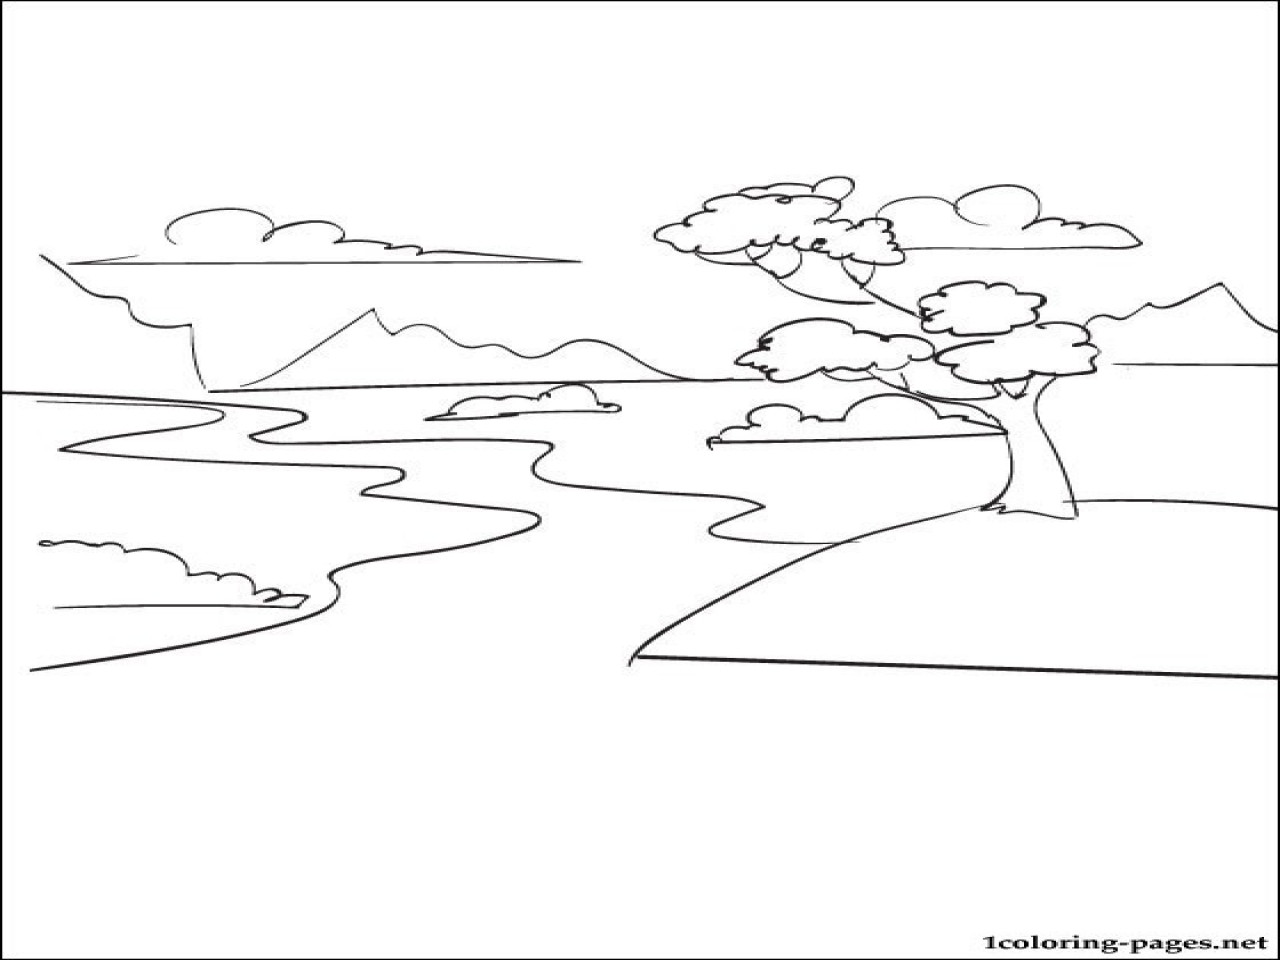 Best ideas about River Coloring Pages . Save or Pin Little Stream Coloring Page River Pages grig3 Now.